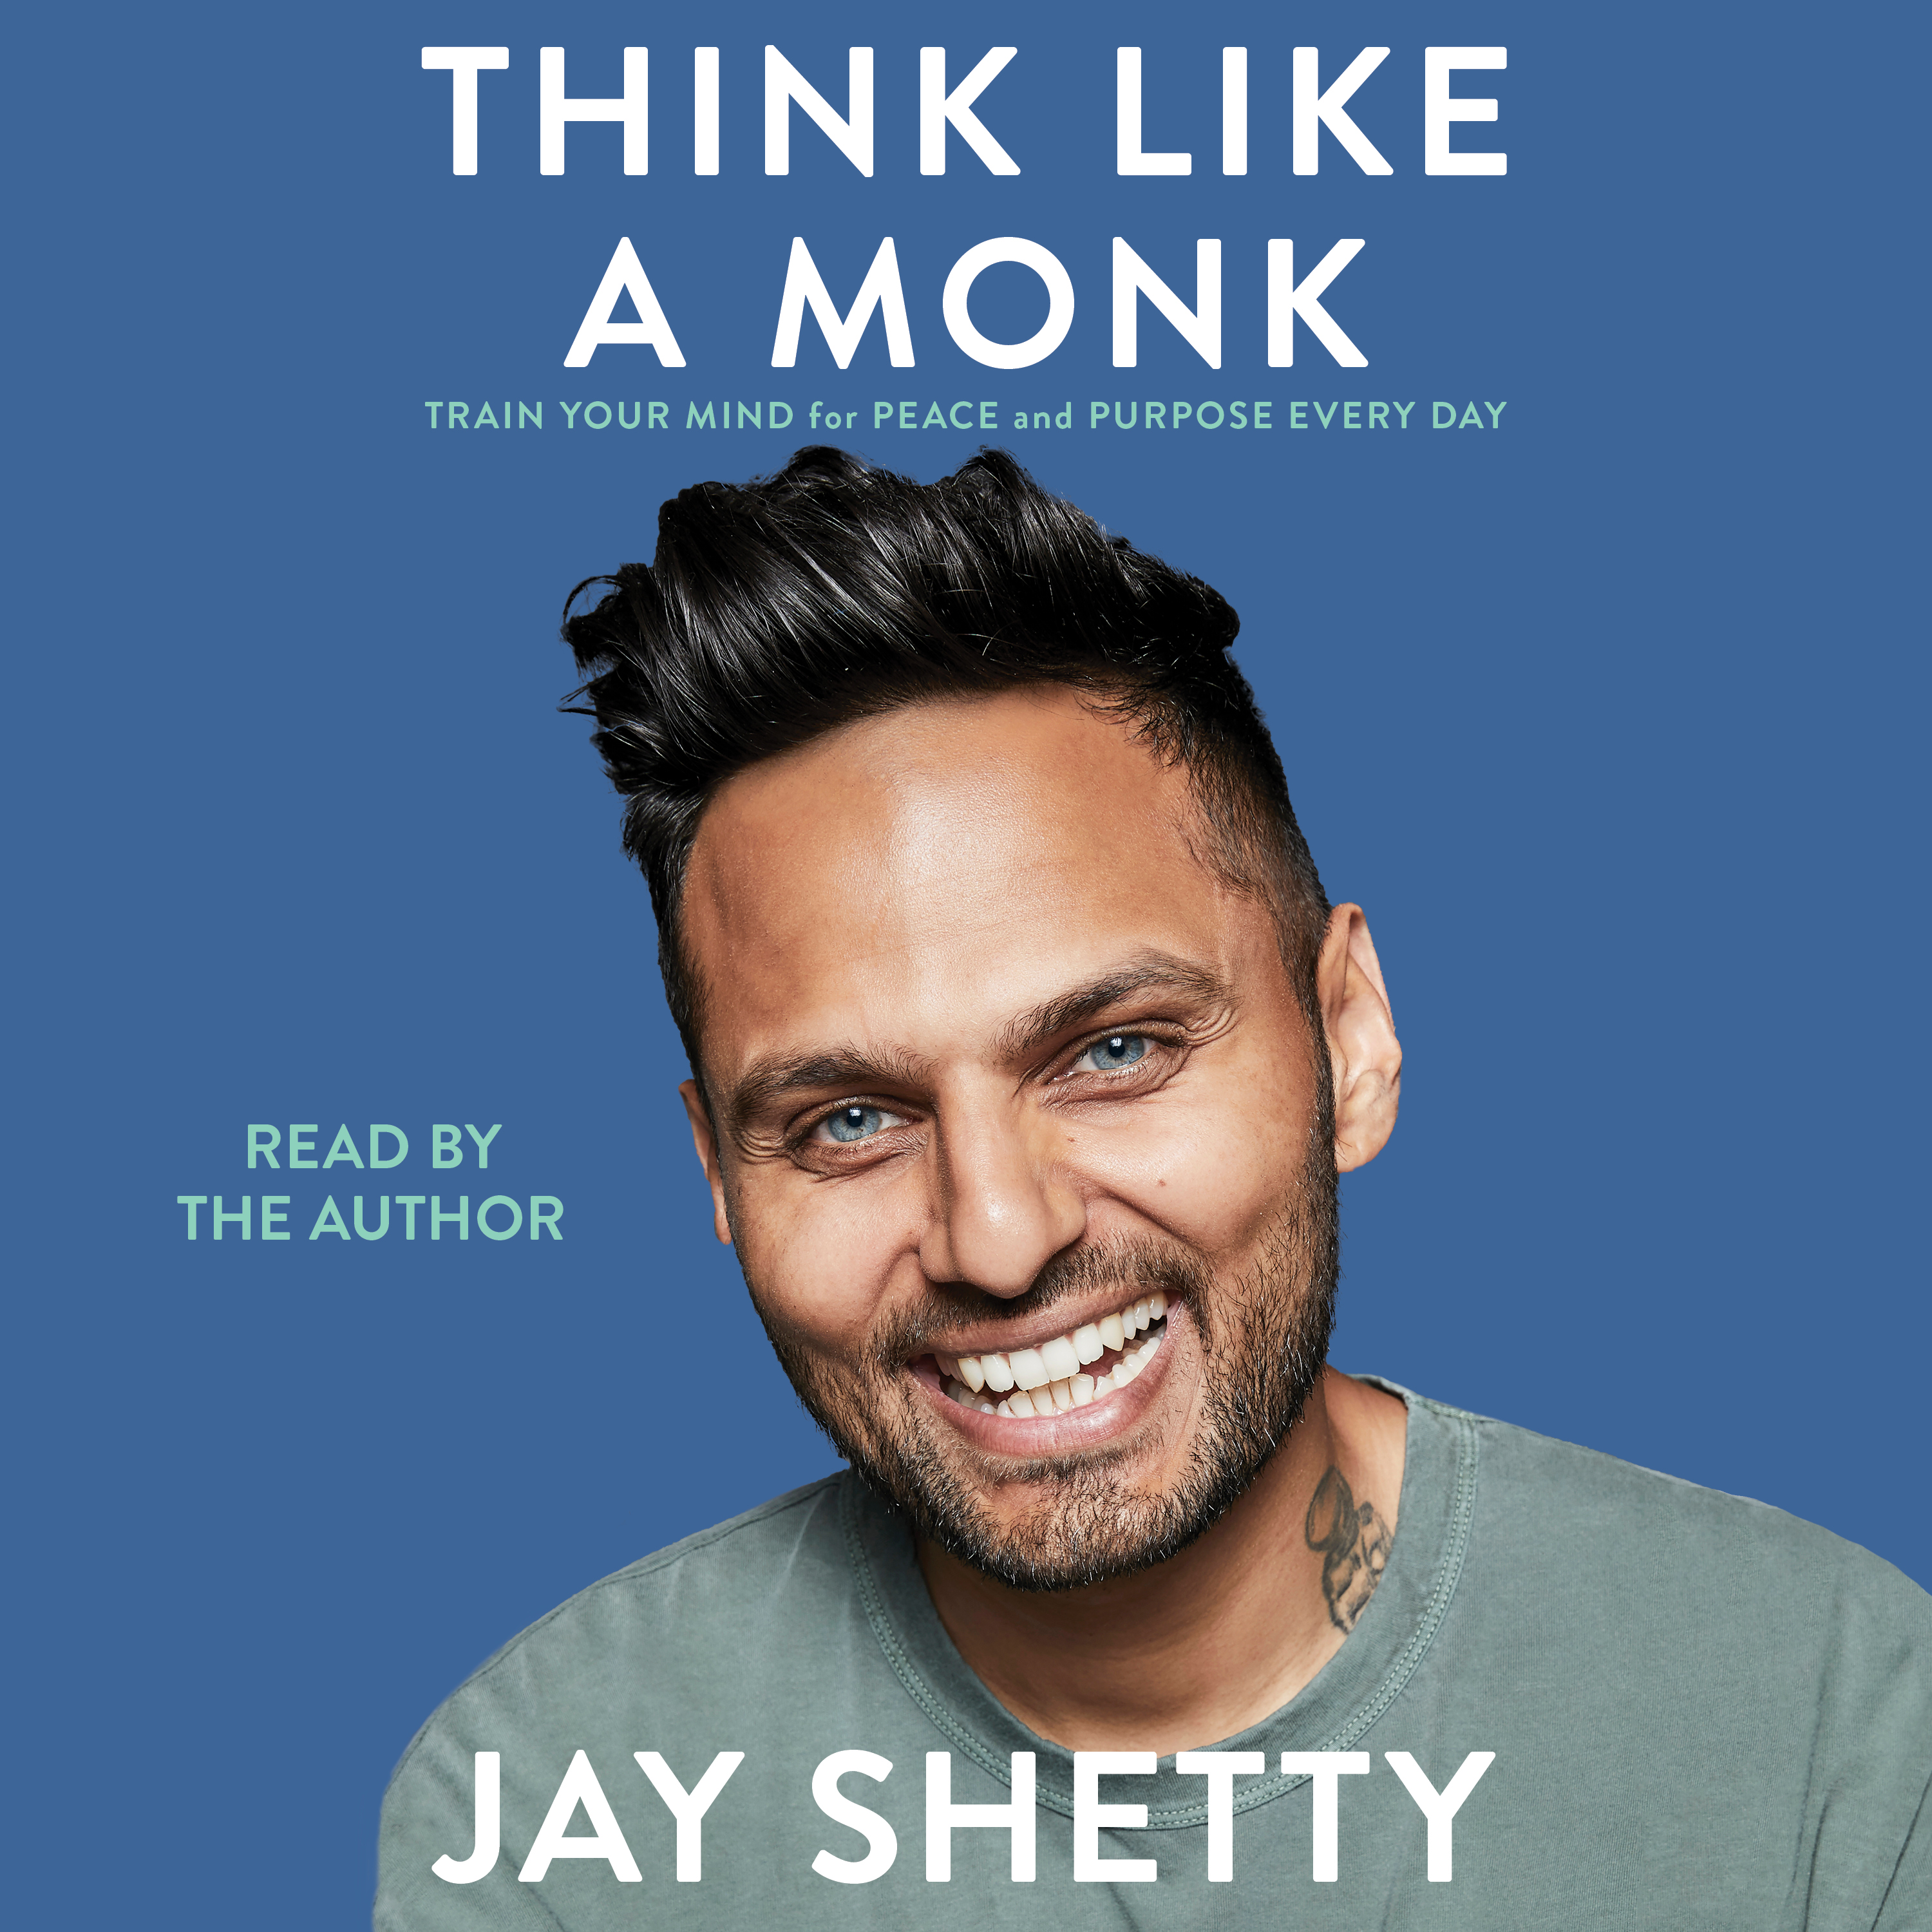 Think Like a Monk Audiobook by Jay Shetty | Official ...